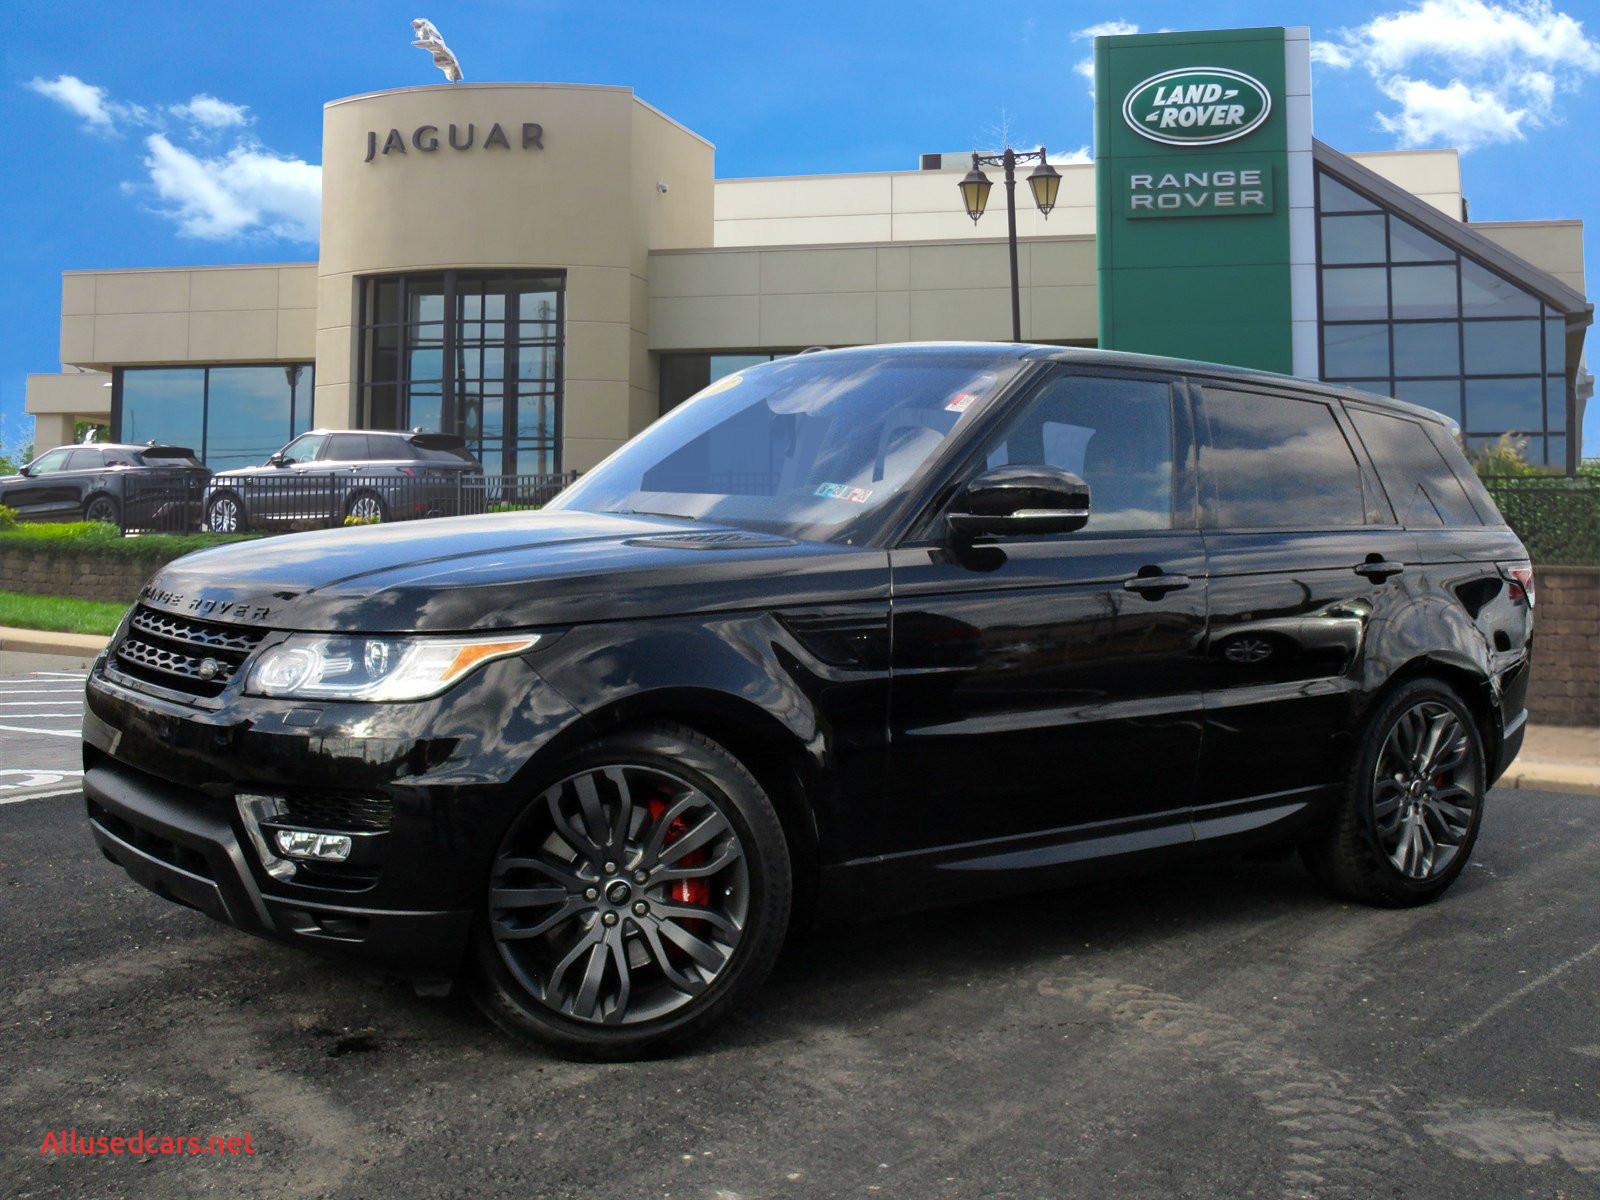 Used Range Rover Sport Luxury Certified Pre Owned 2017 Land Rover Range Rover Sport with Navigation & 4wd